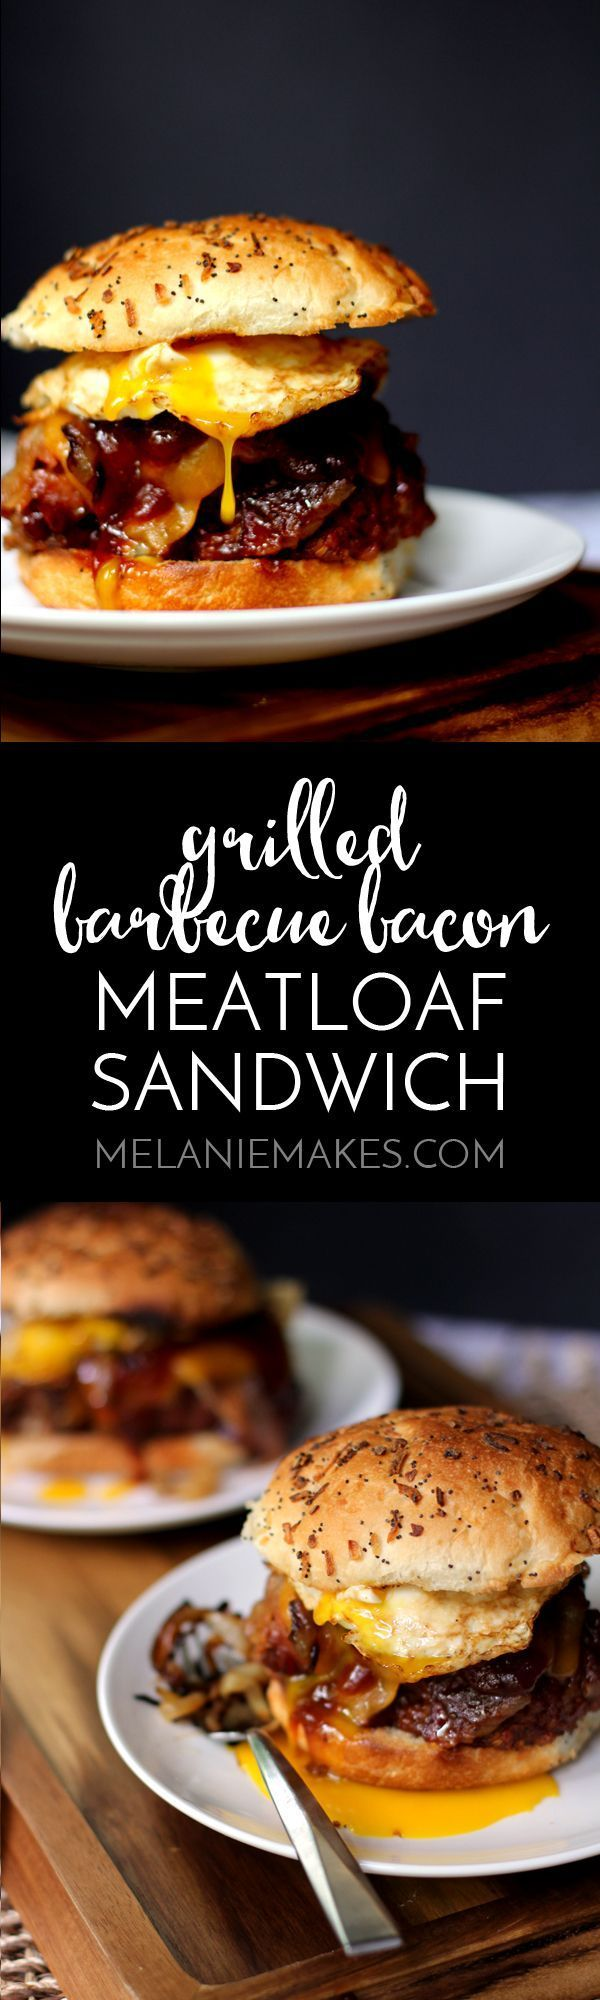 This Grilled Barbecue Bacon Meatloaf Sandwich is the absolute king of all sandwiches. A thick slice of grilled, bacon wrapped meatloaf covered in blanketed by a melty slice of sharp cheddar cheese before being topped with bourbon caramelized onions, barbecue sauce and a fried egg. Dinner is served!